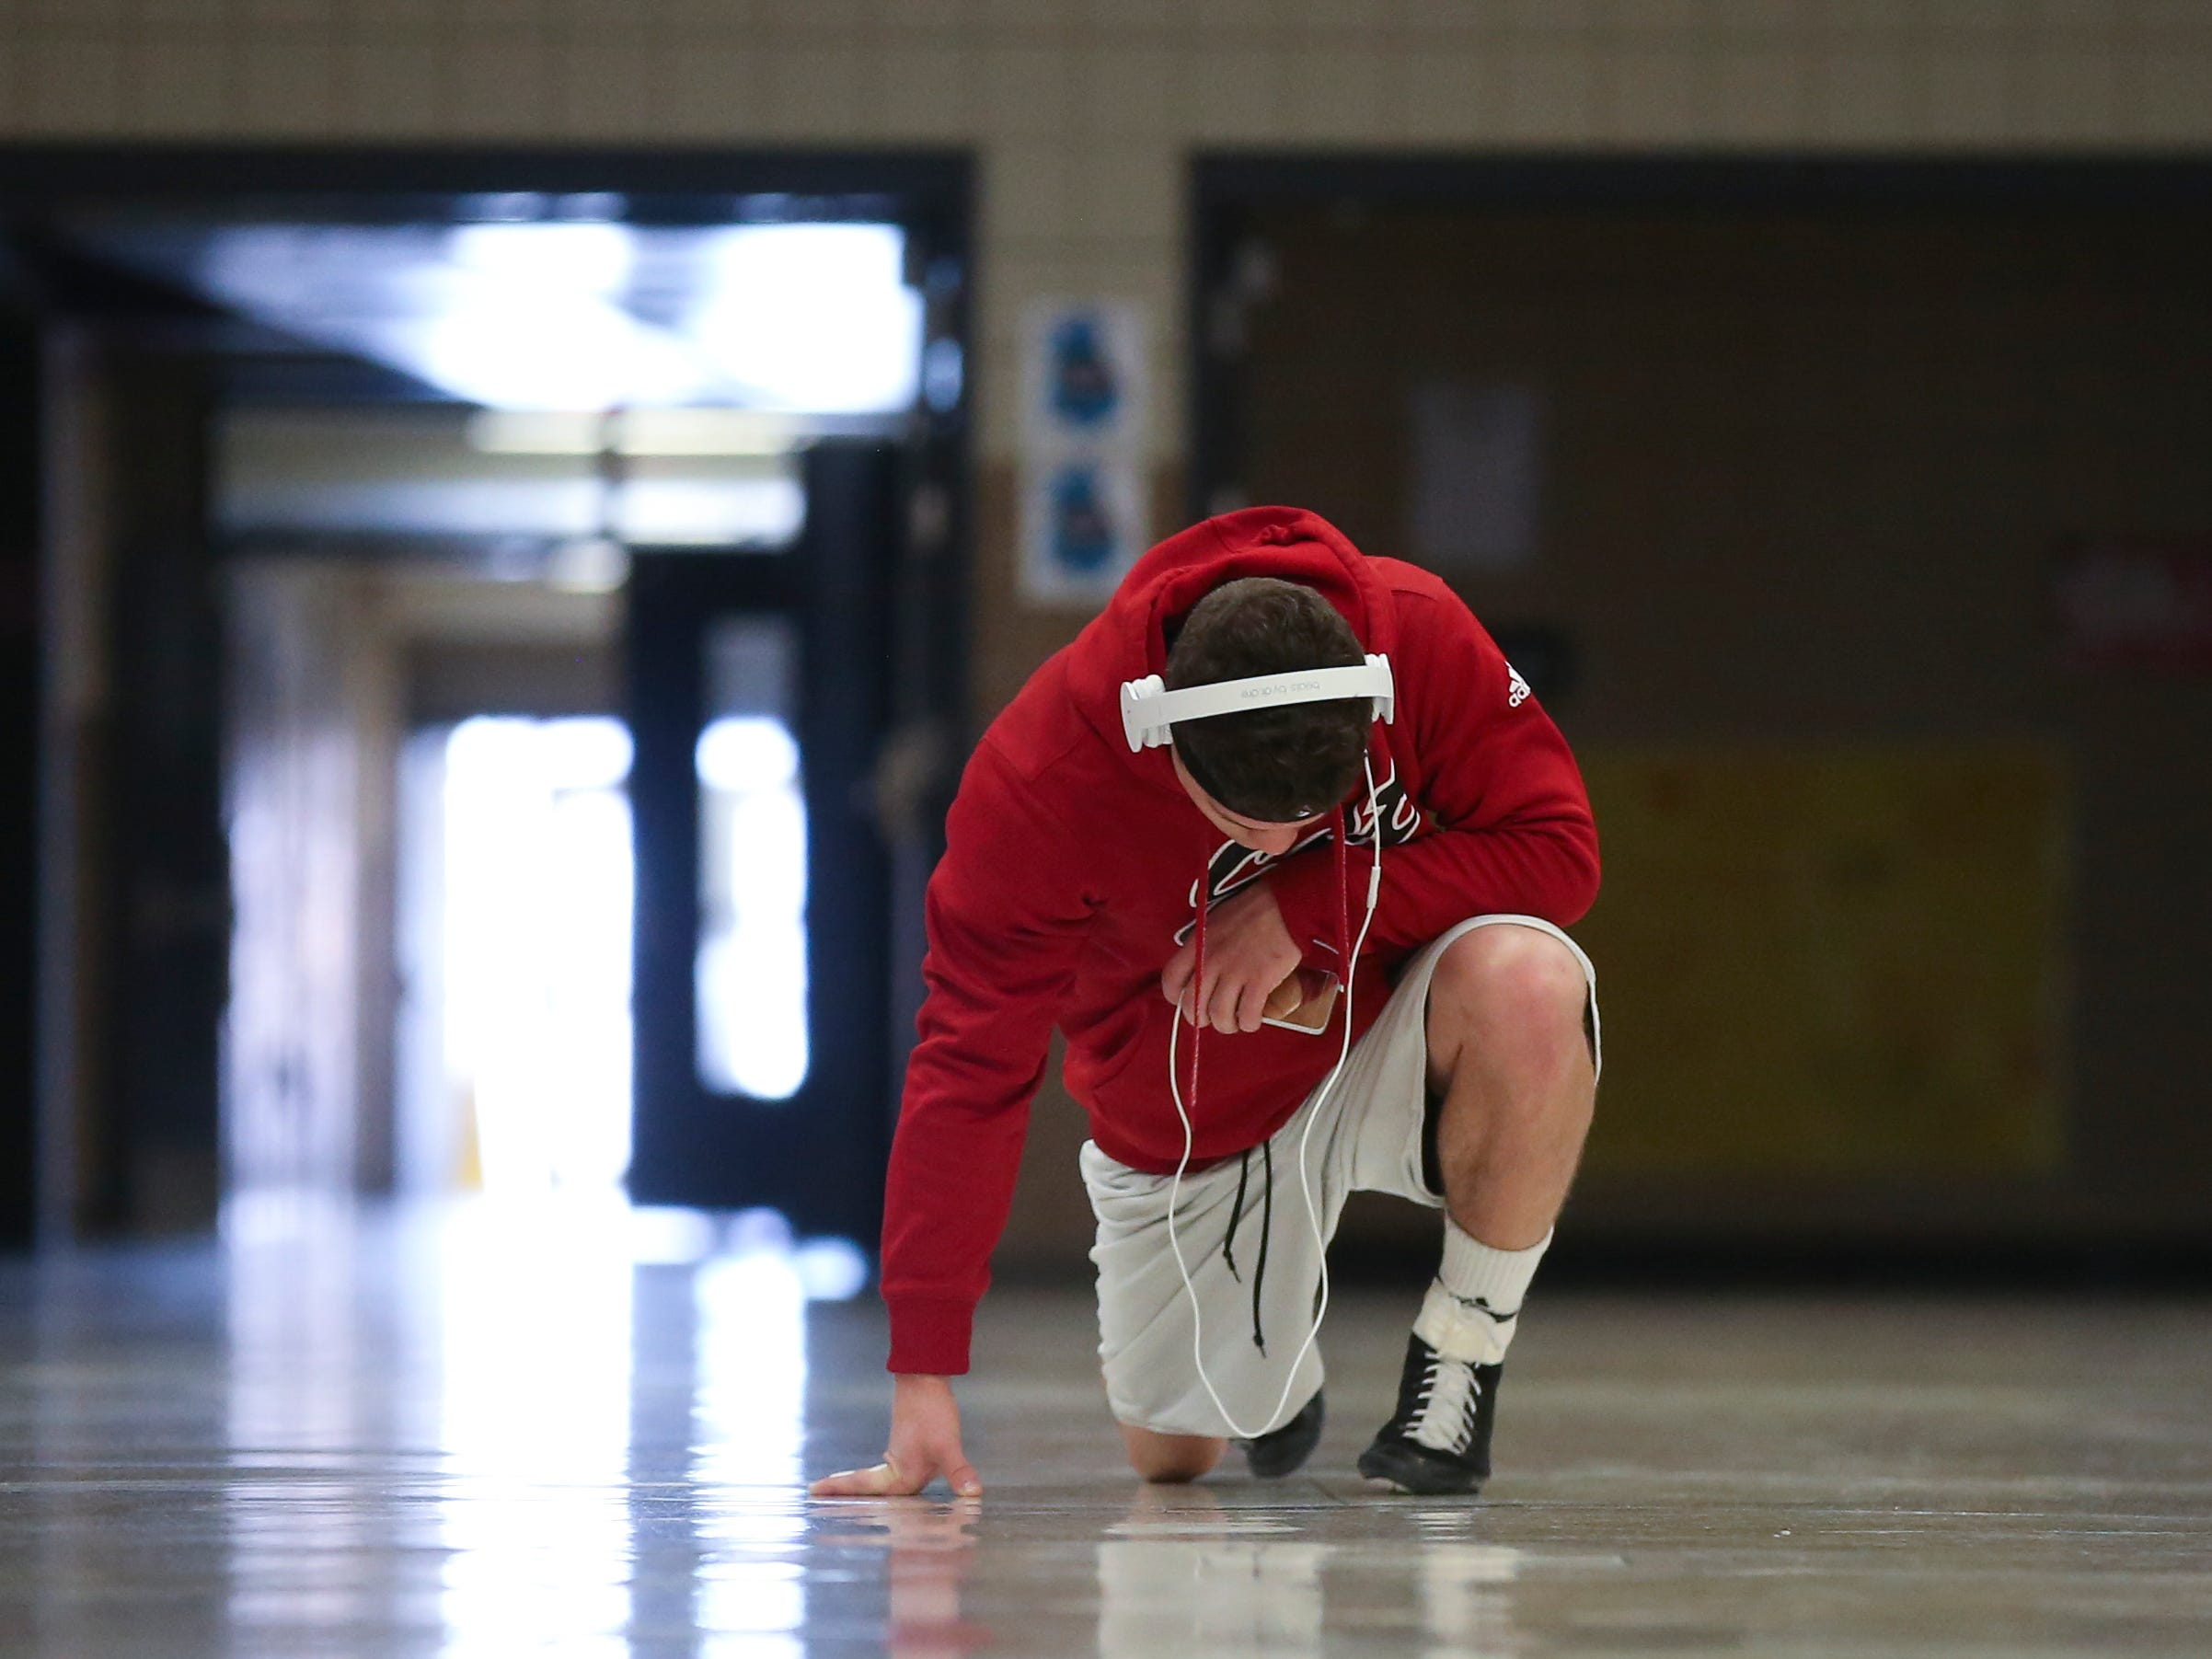 """An internal fire is pushing East 152-pound wrestler Josh Davis toward a top seed at this week's Class 3-A state wrestling tournament in Des Moines. """"Honestly, I just want people to know I have the ability to do it. There's so many people out there who doubt me for whatever reason,"""" he said. """"I just want to show them what I've got."""""""